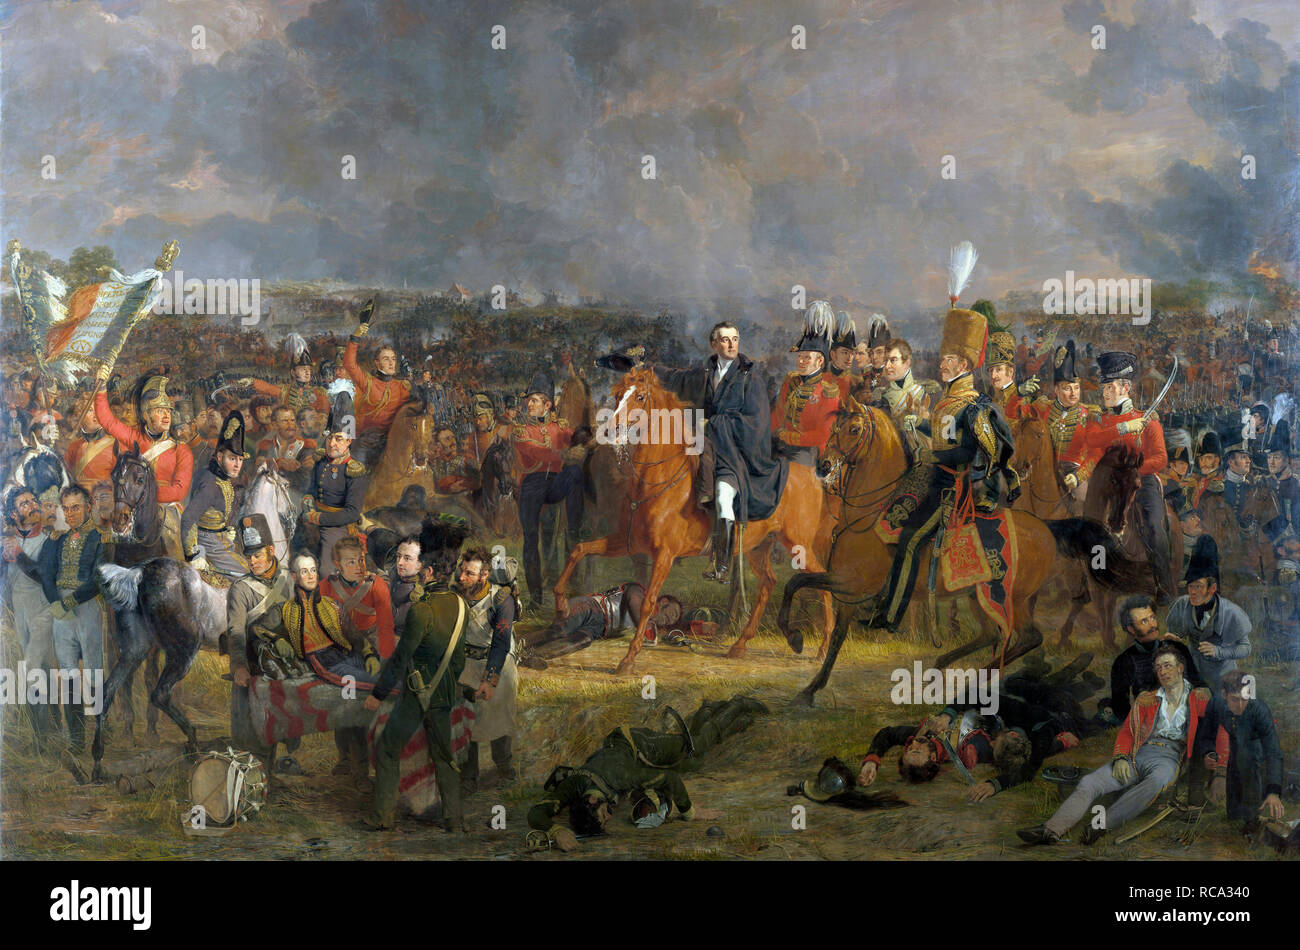 The Battle of Waterloo, after a painting by Jan Willem Pieneman on display in the Rijksmuseum, Amsterdam, Netherlands.  Wellington, centre, receives news that his Prussian allies are close by.  To the left the wounded William, Prince of Orange is carried away on a litter.  The battle rages in the background. - Stock Image